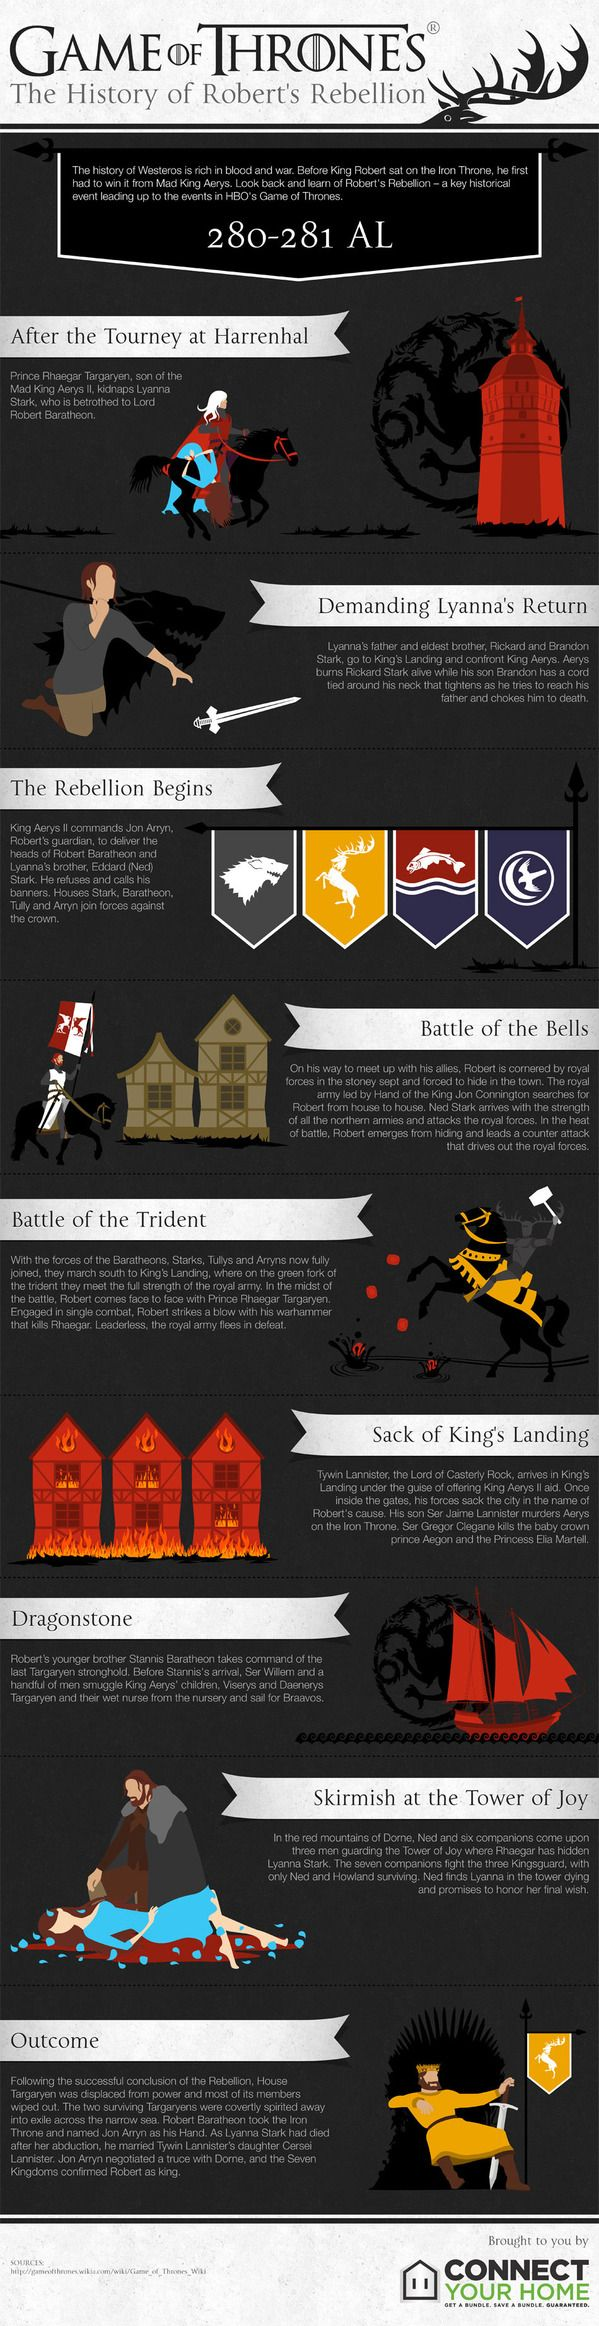 A History of Robert's Rebellion - Key historical events that led up to King Robert's ascension to the throne.